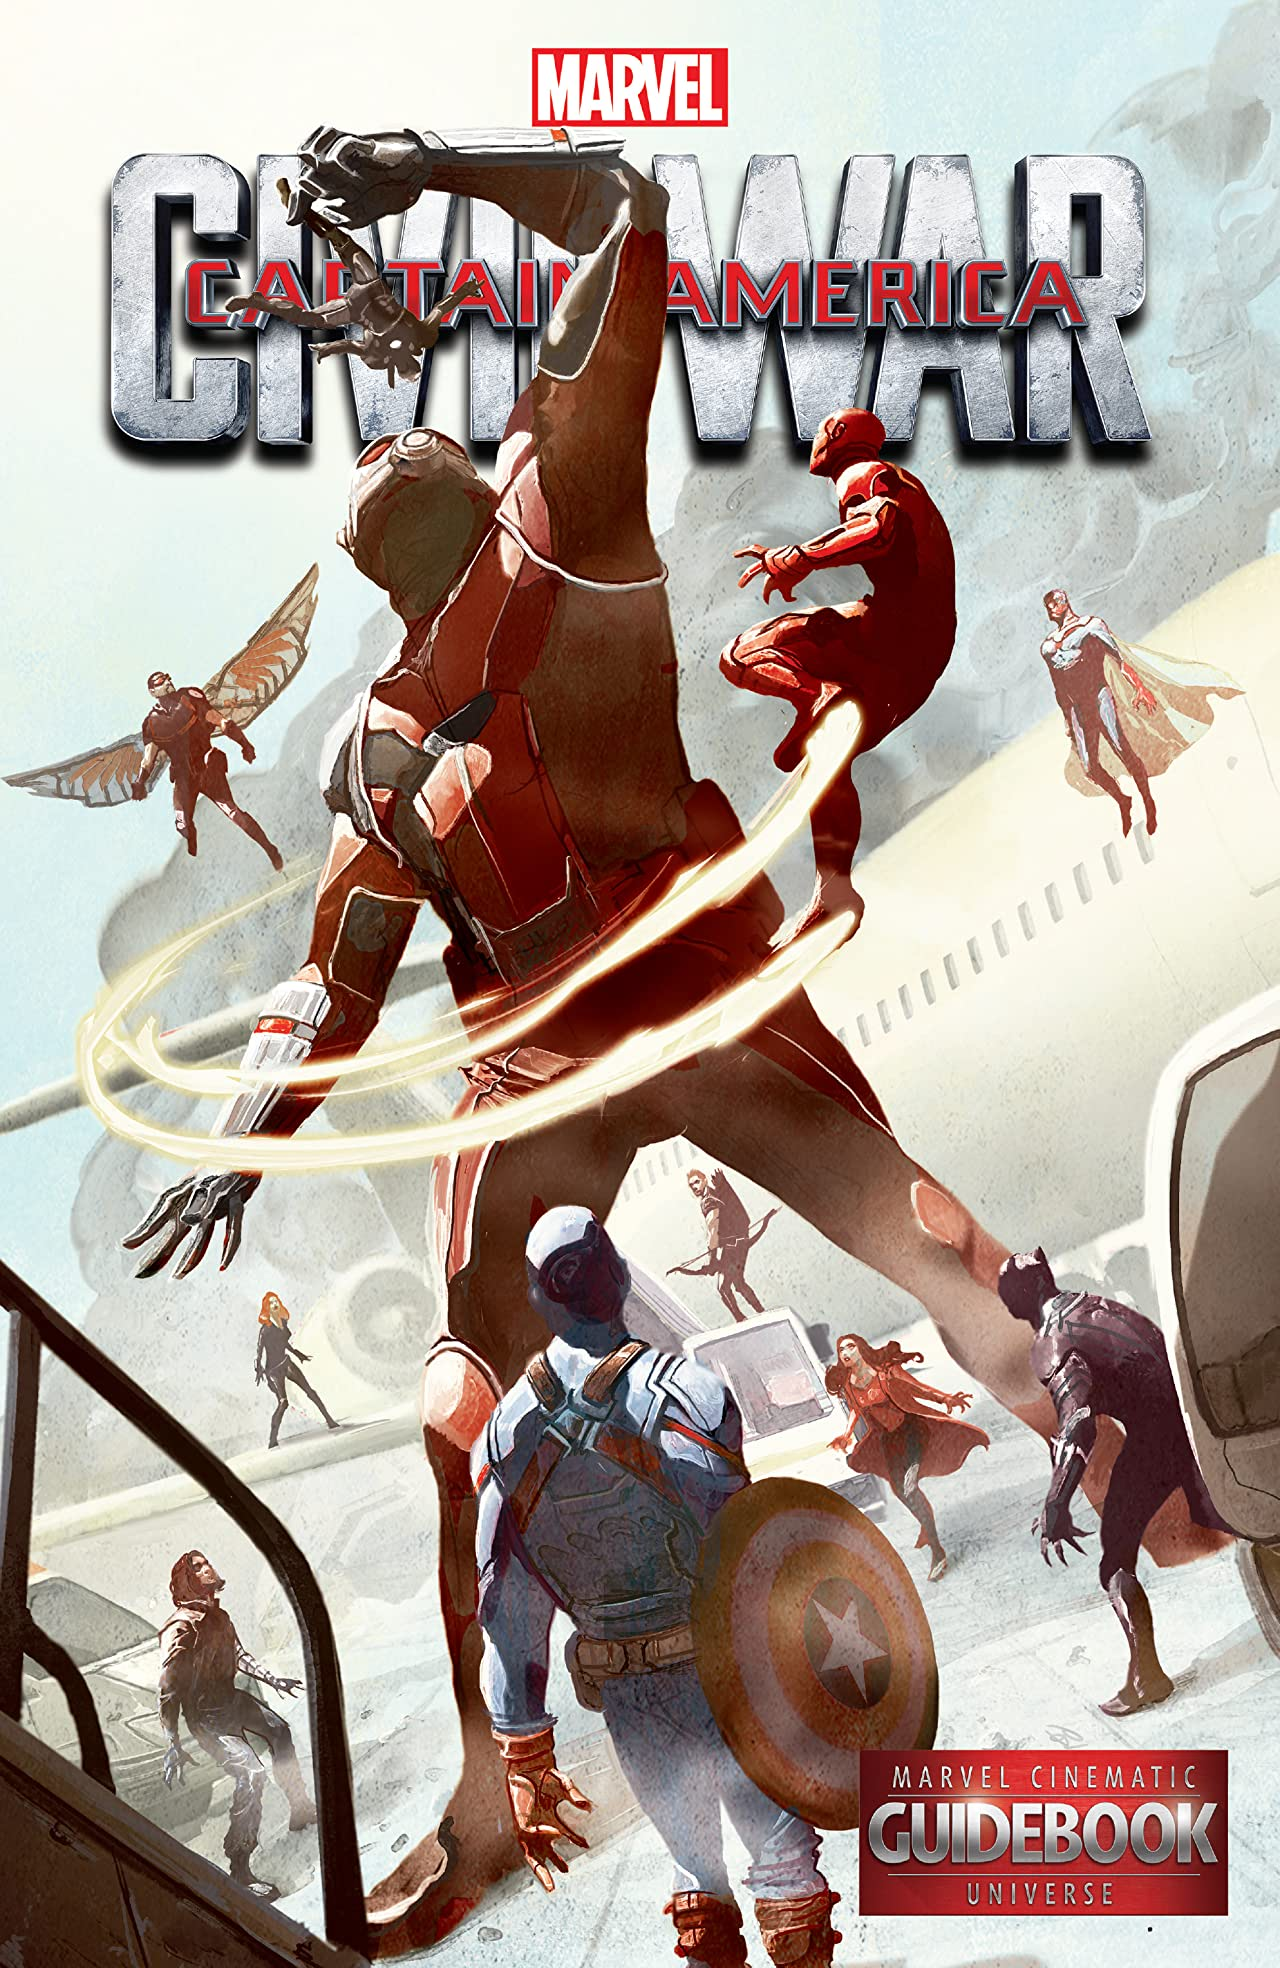 Guidebook to the Marvel Cinematic Universe - Marvel's Captain America: Civil War #1